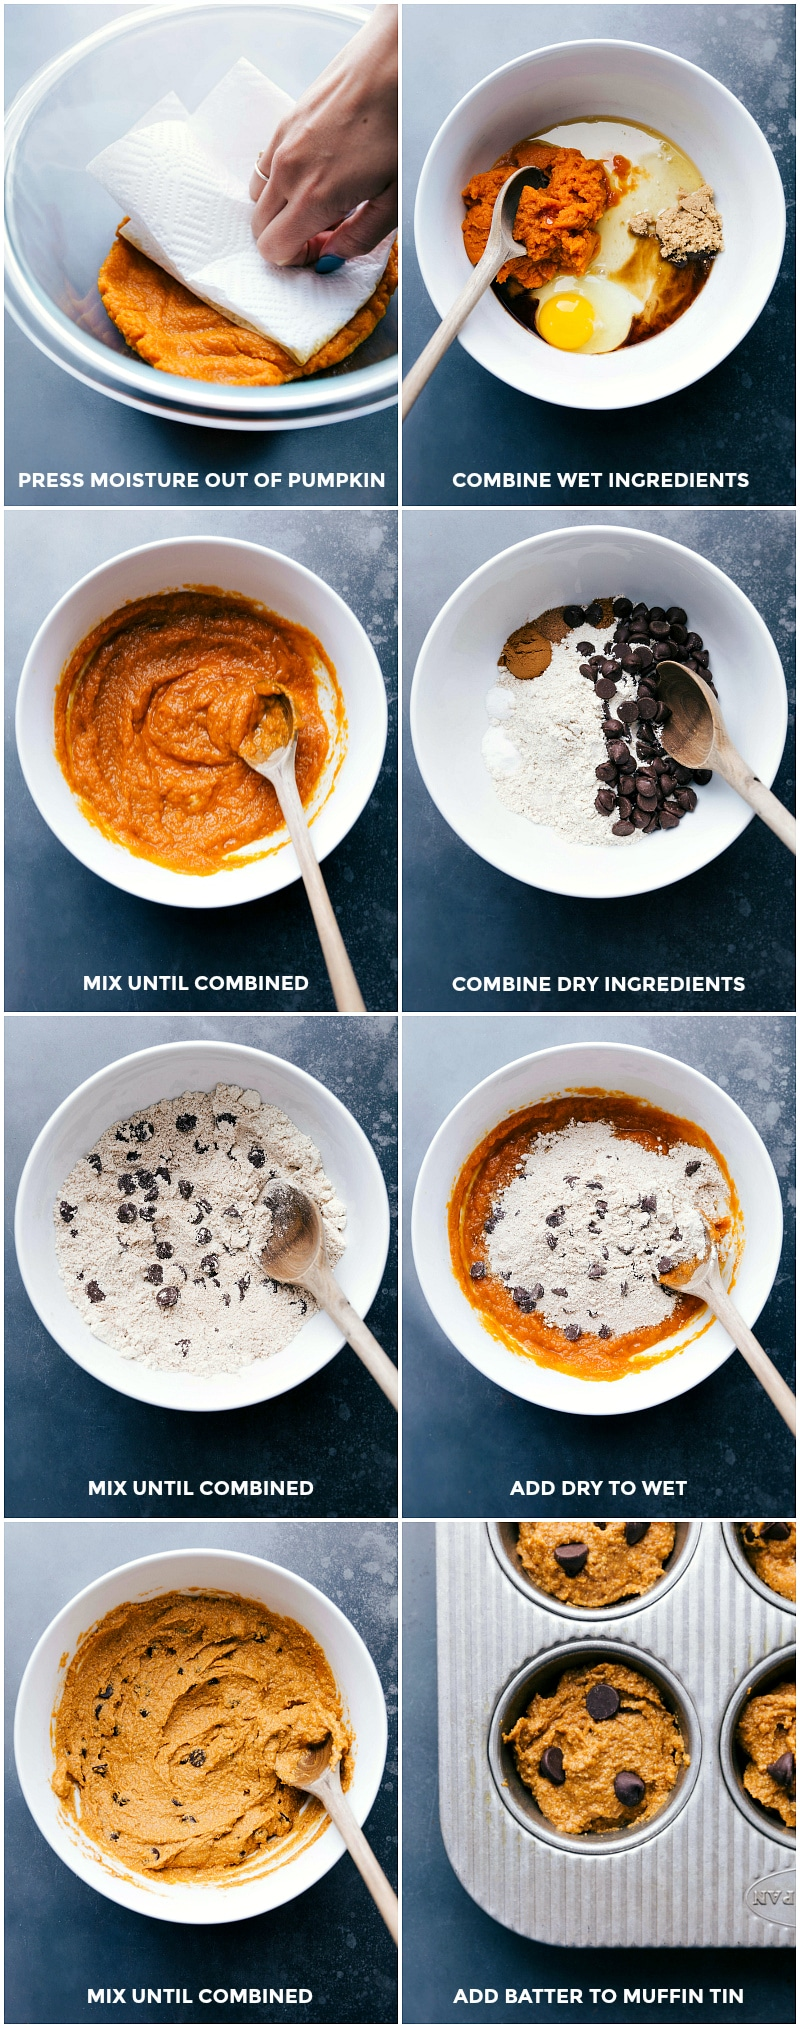 Process shots-- images of the wet and the dry ingredients being combined and added to a prepared muffin tin